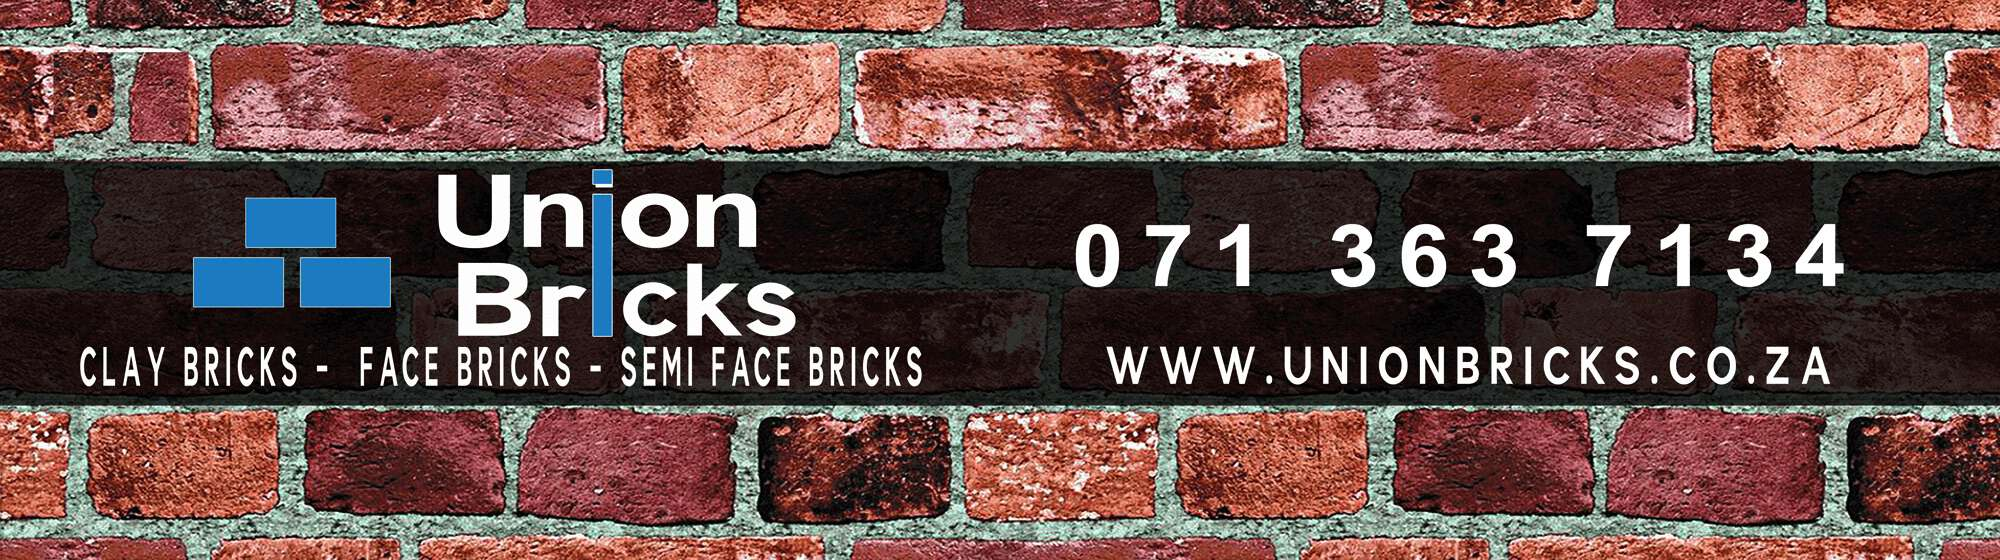 Union Bricks